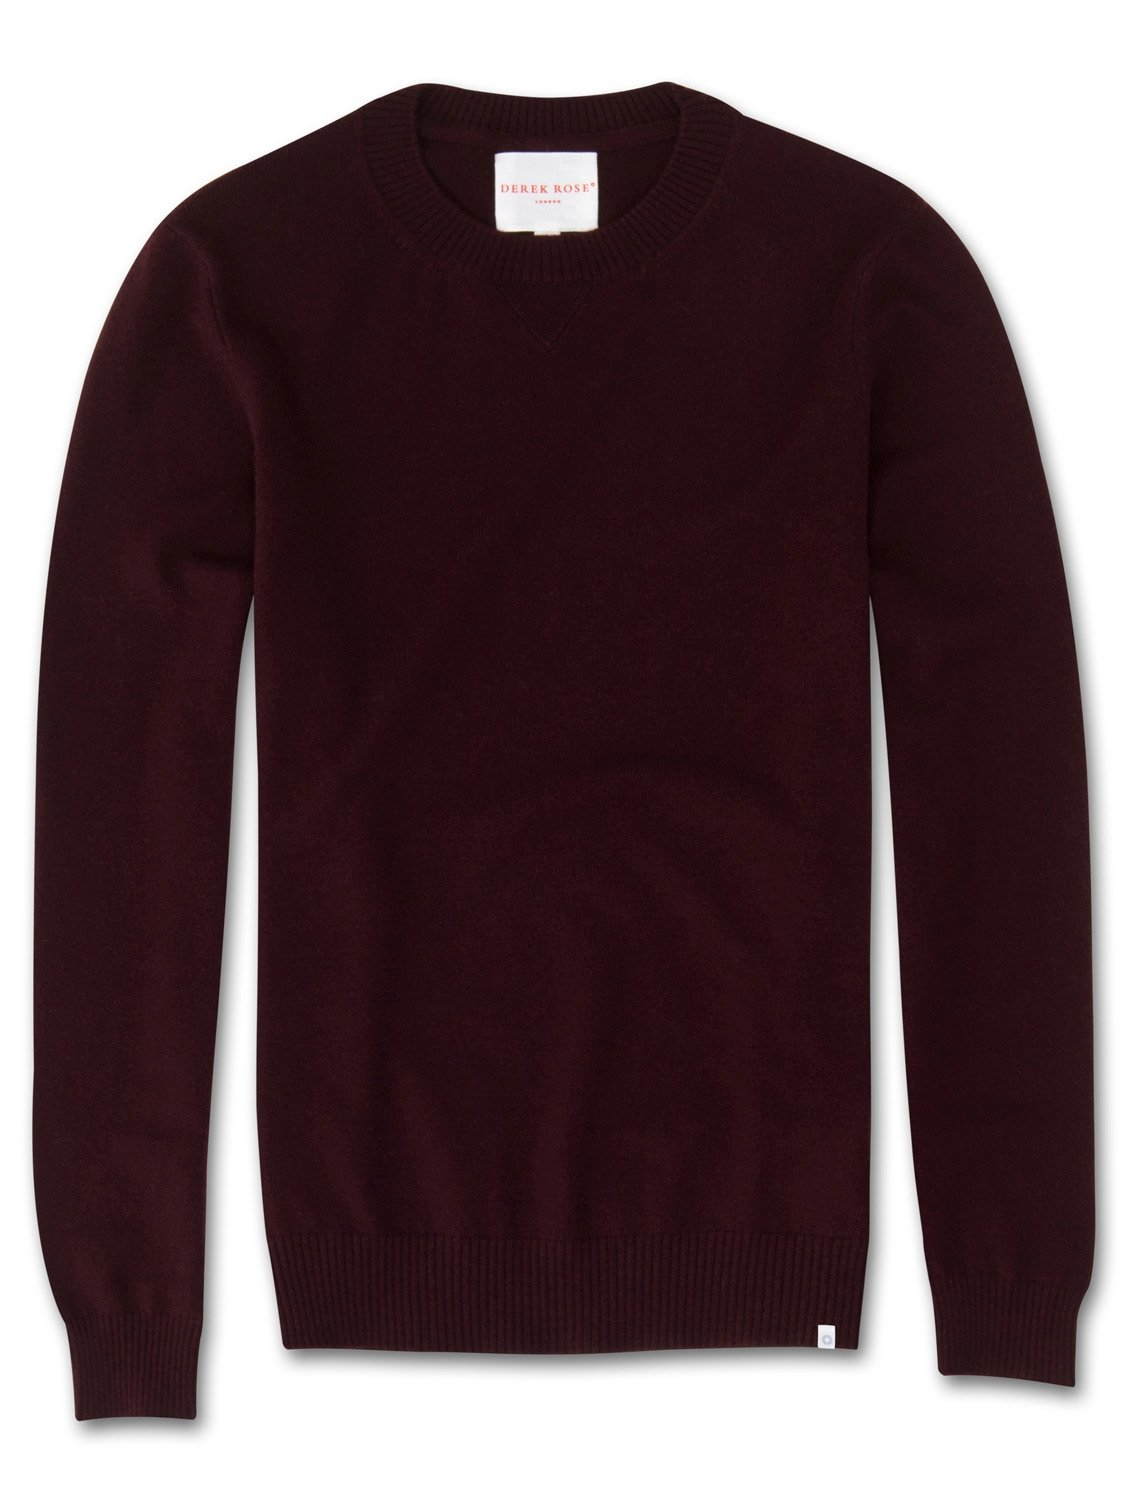 Men's Cashmere Sweater Finley Pure Cashmere Burgundy